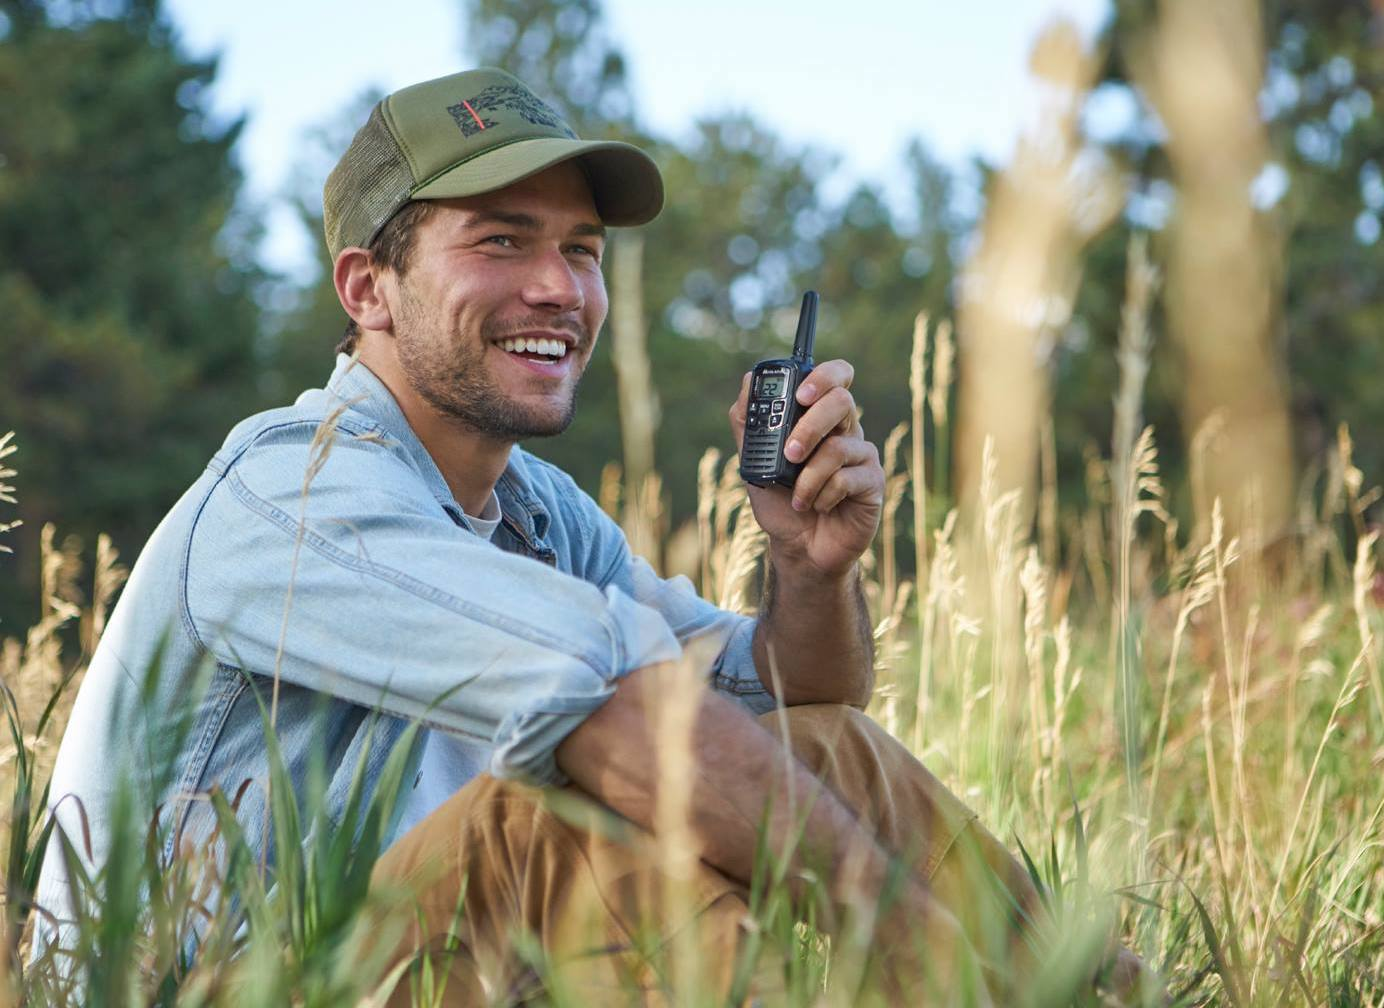 a man smiling in the woods holding a midland walkie talkie